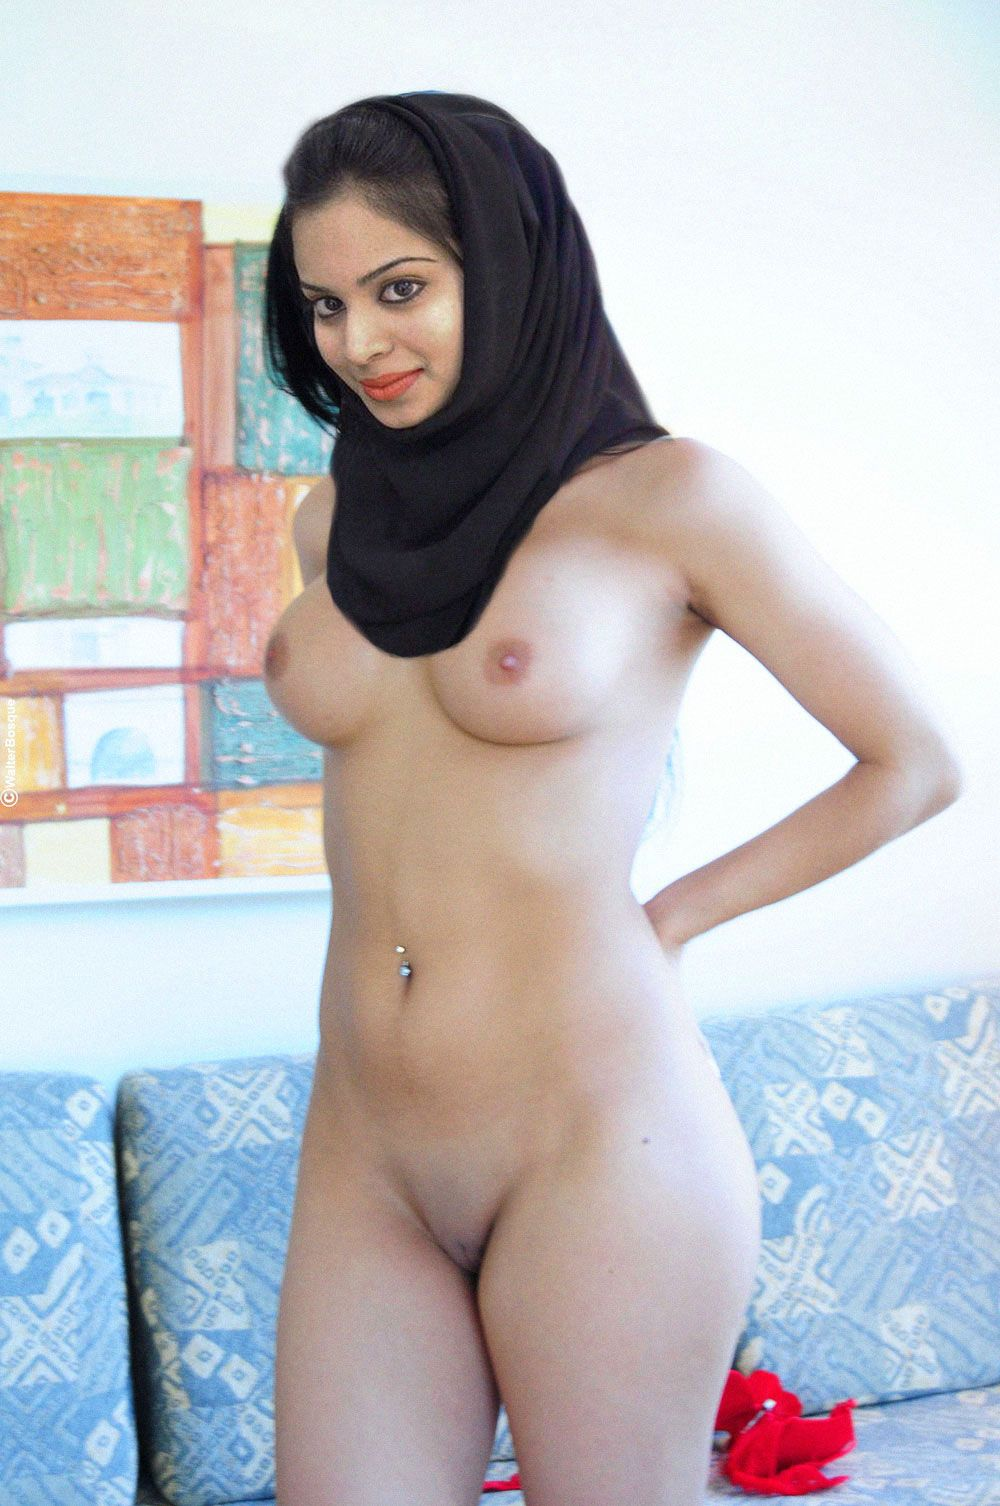 Model nackt arab girls summers fuck hole